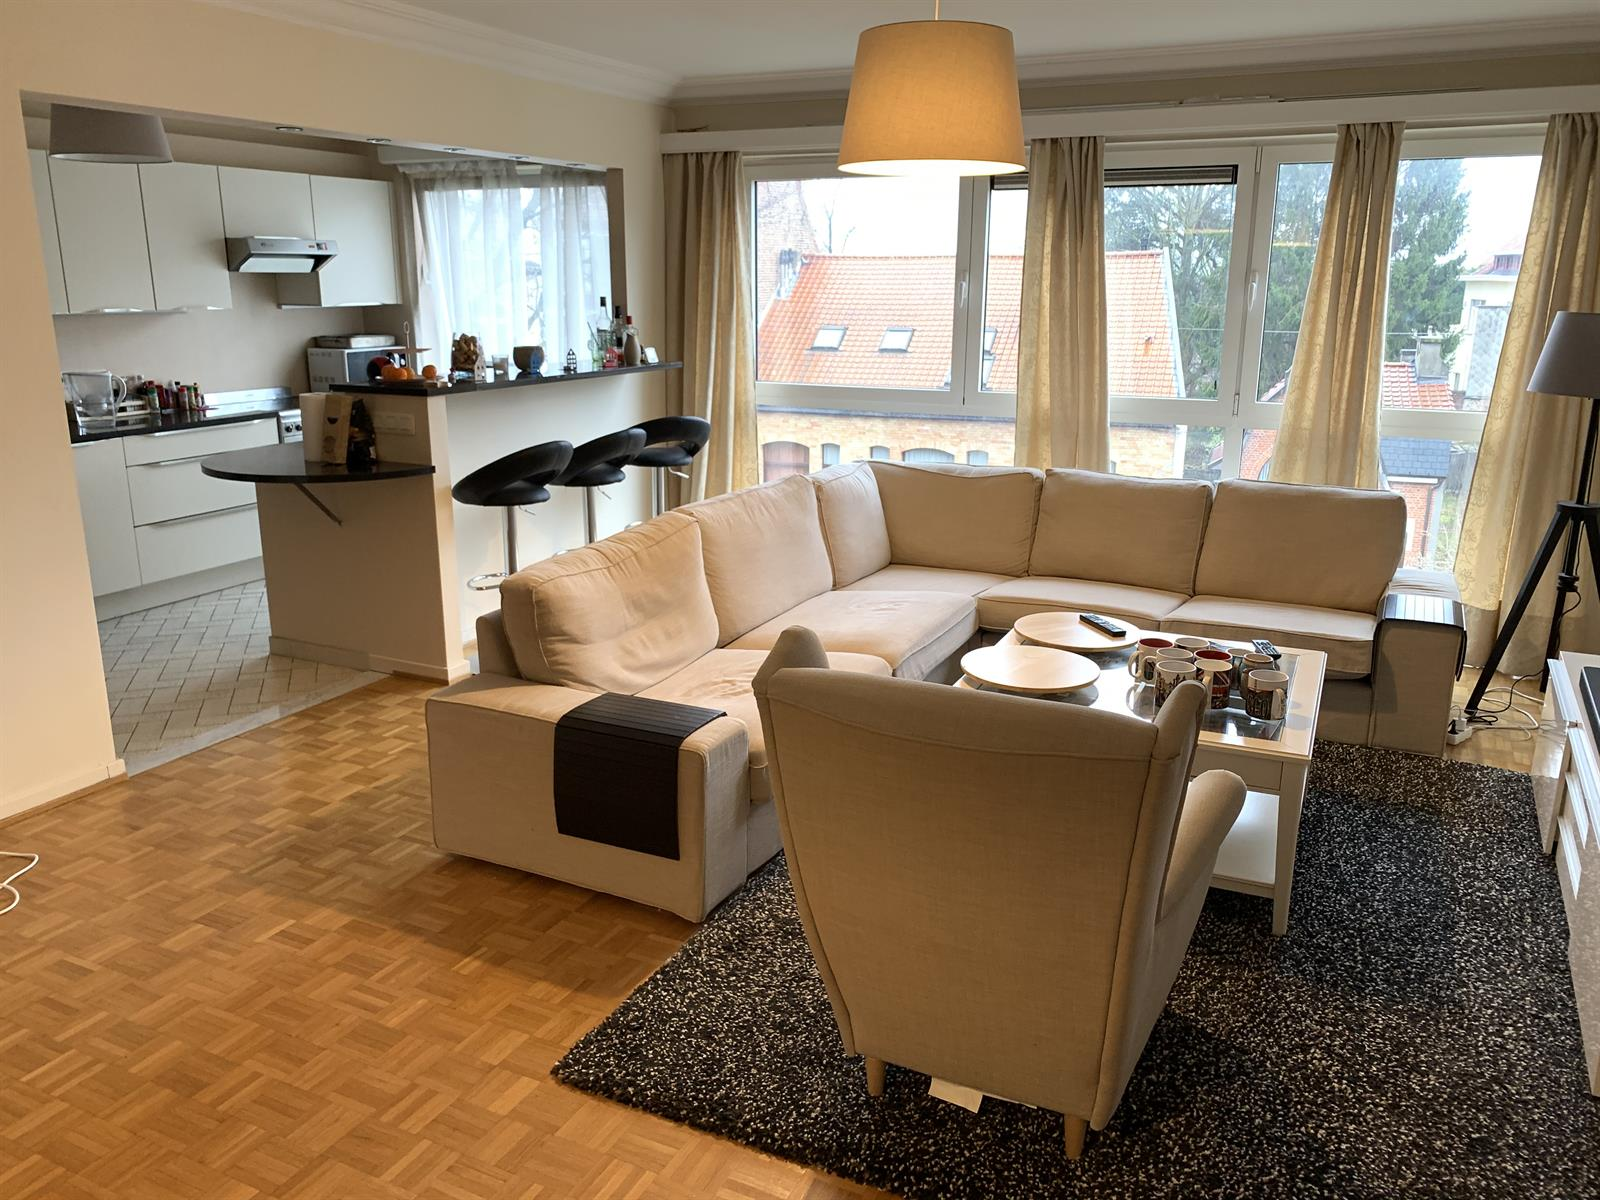 Appartement - Woluwe-Saint-Pierre - #4223959-1